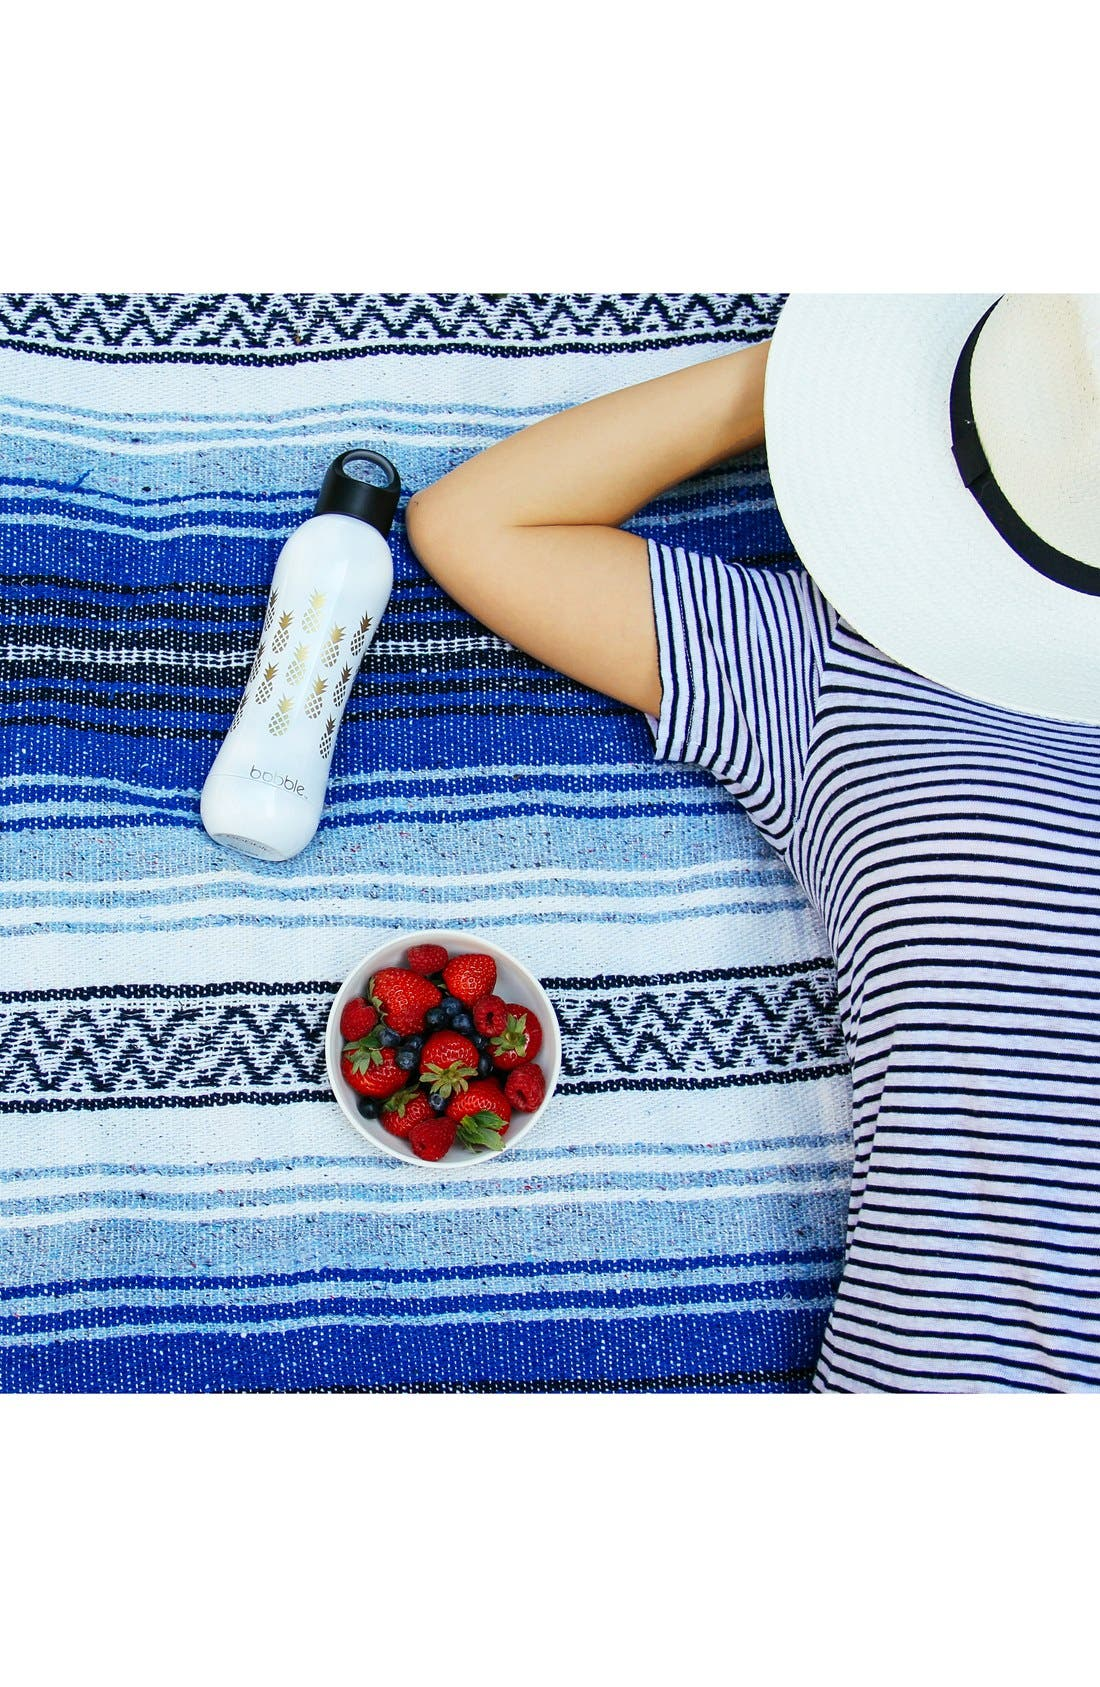 'Pining for You' Stainless Steel Water Bottle,                             Alternate thumbnail 2, color,                             White